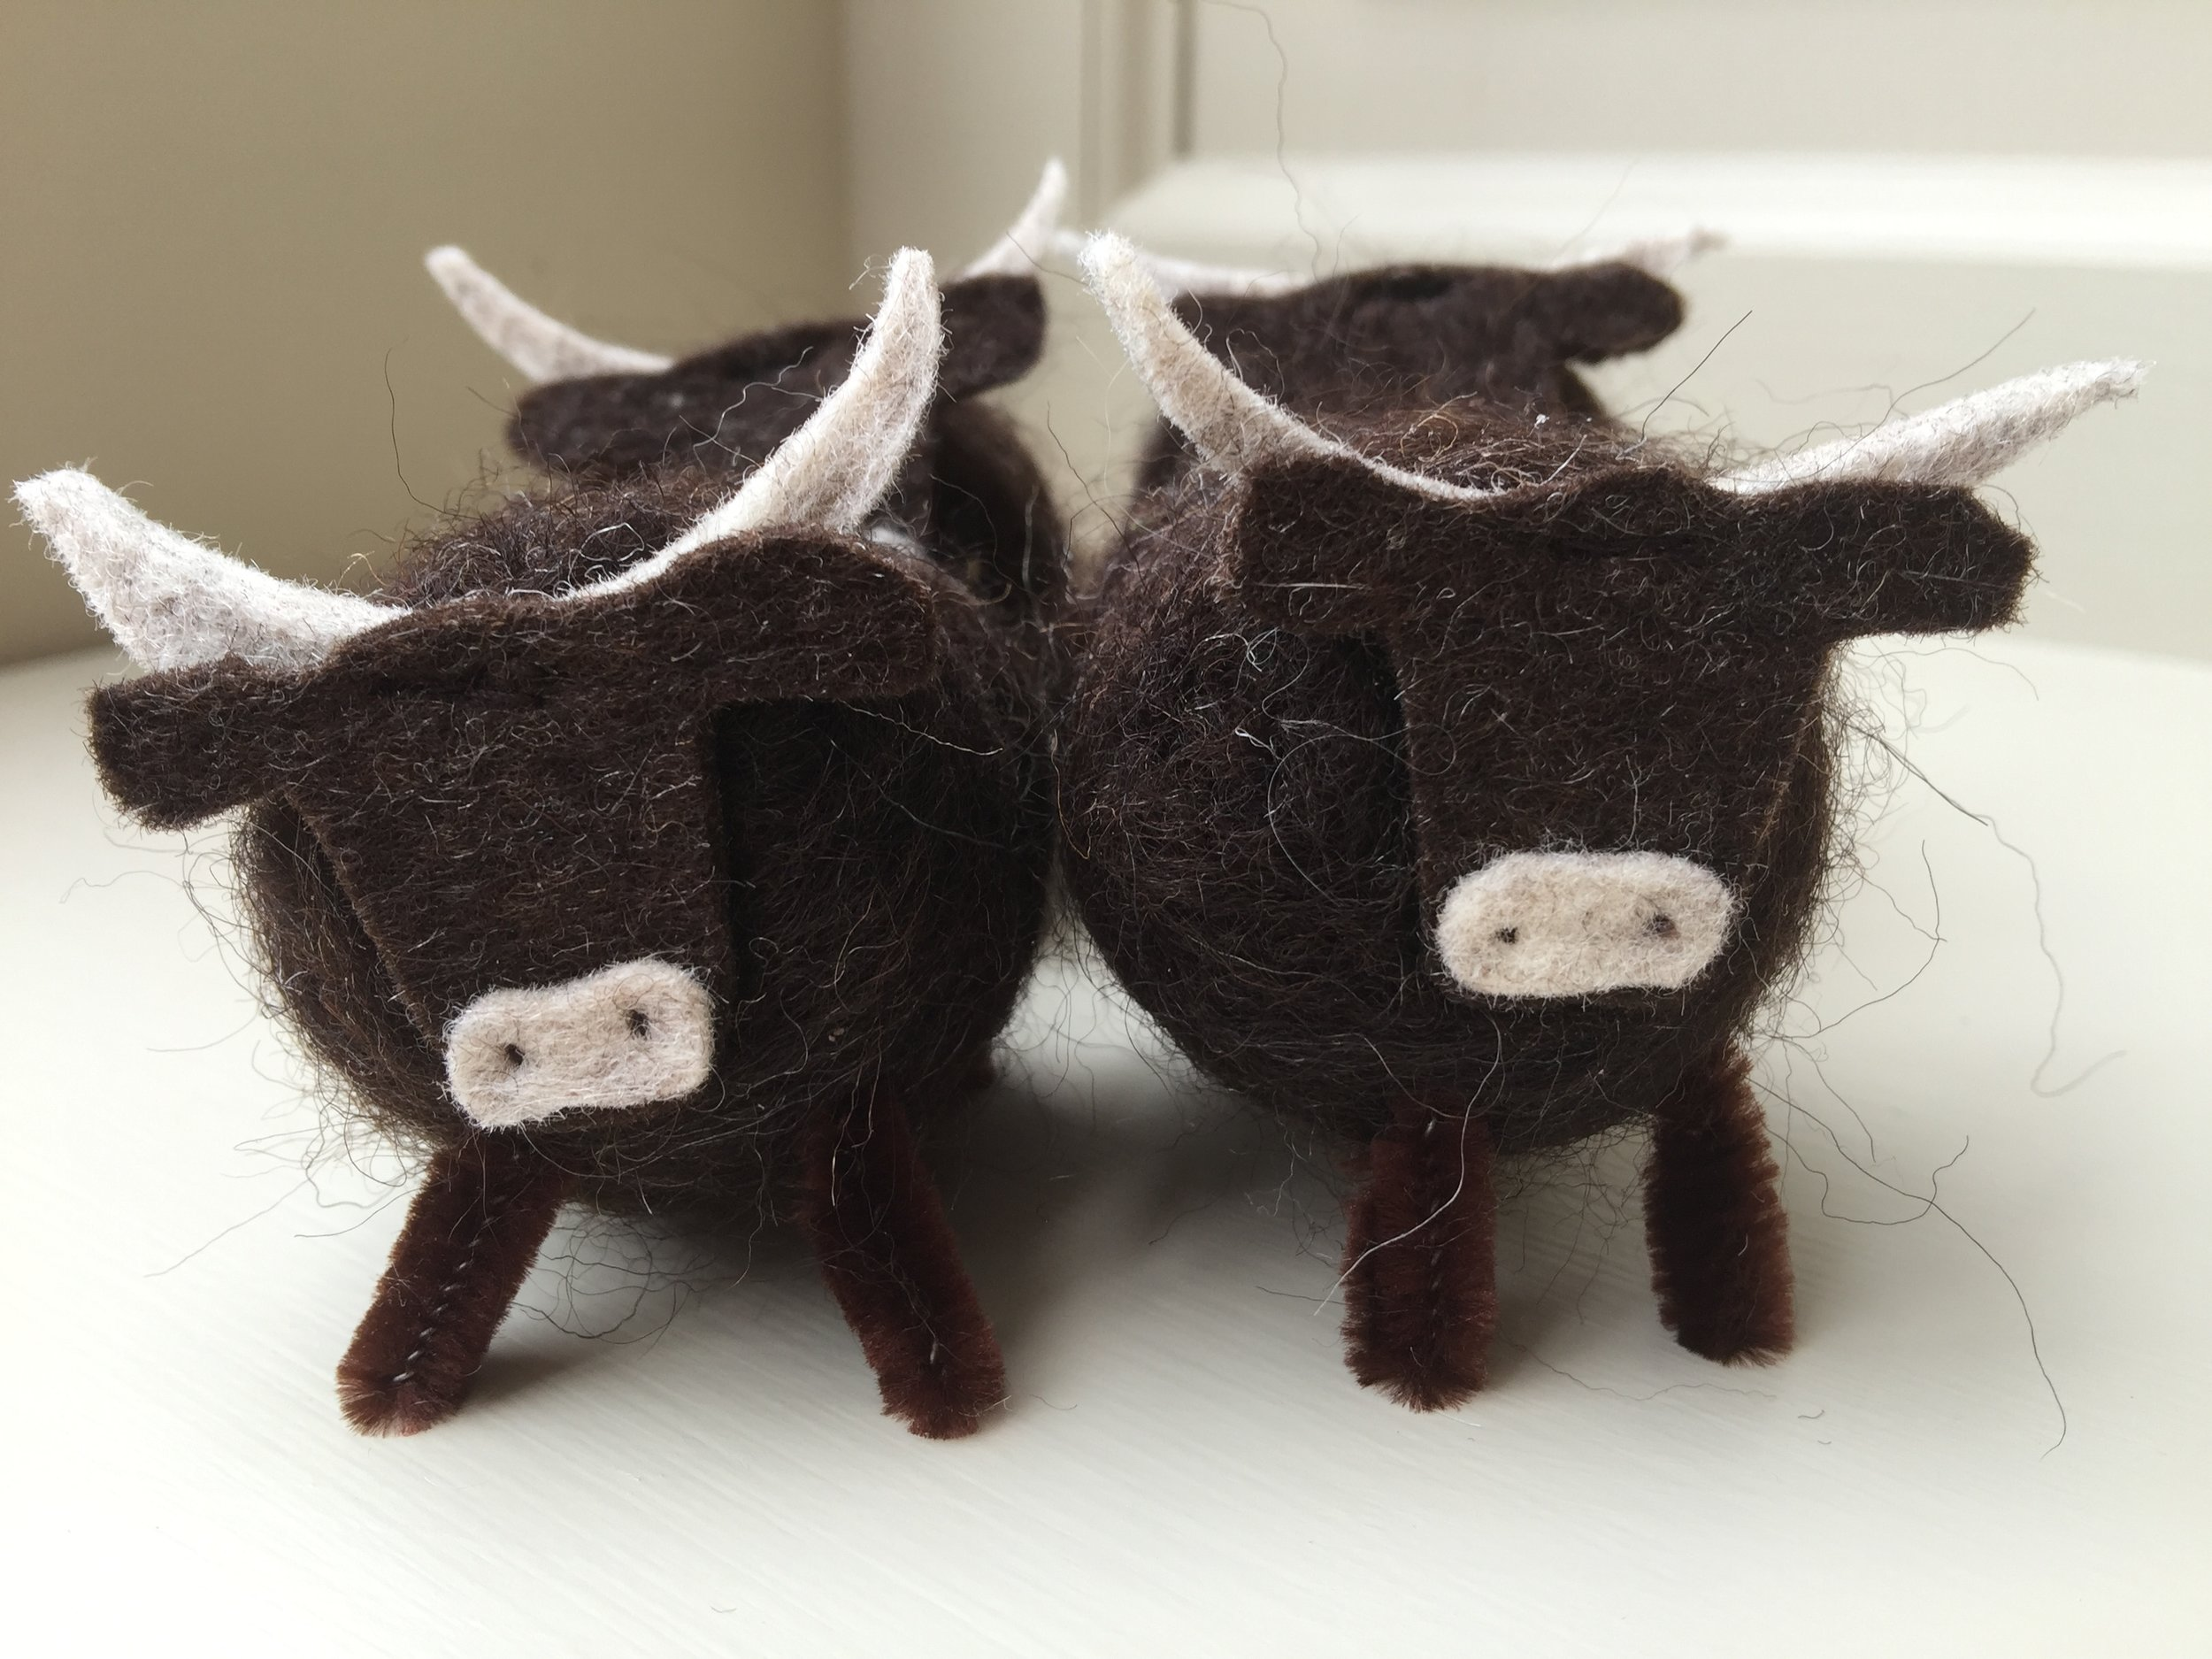 Farm animals :crafted in their simplest form to capture the characteristics of farm animals